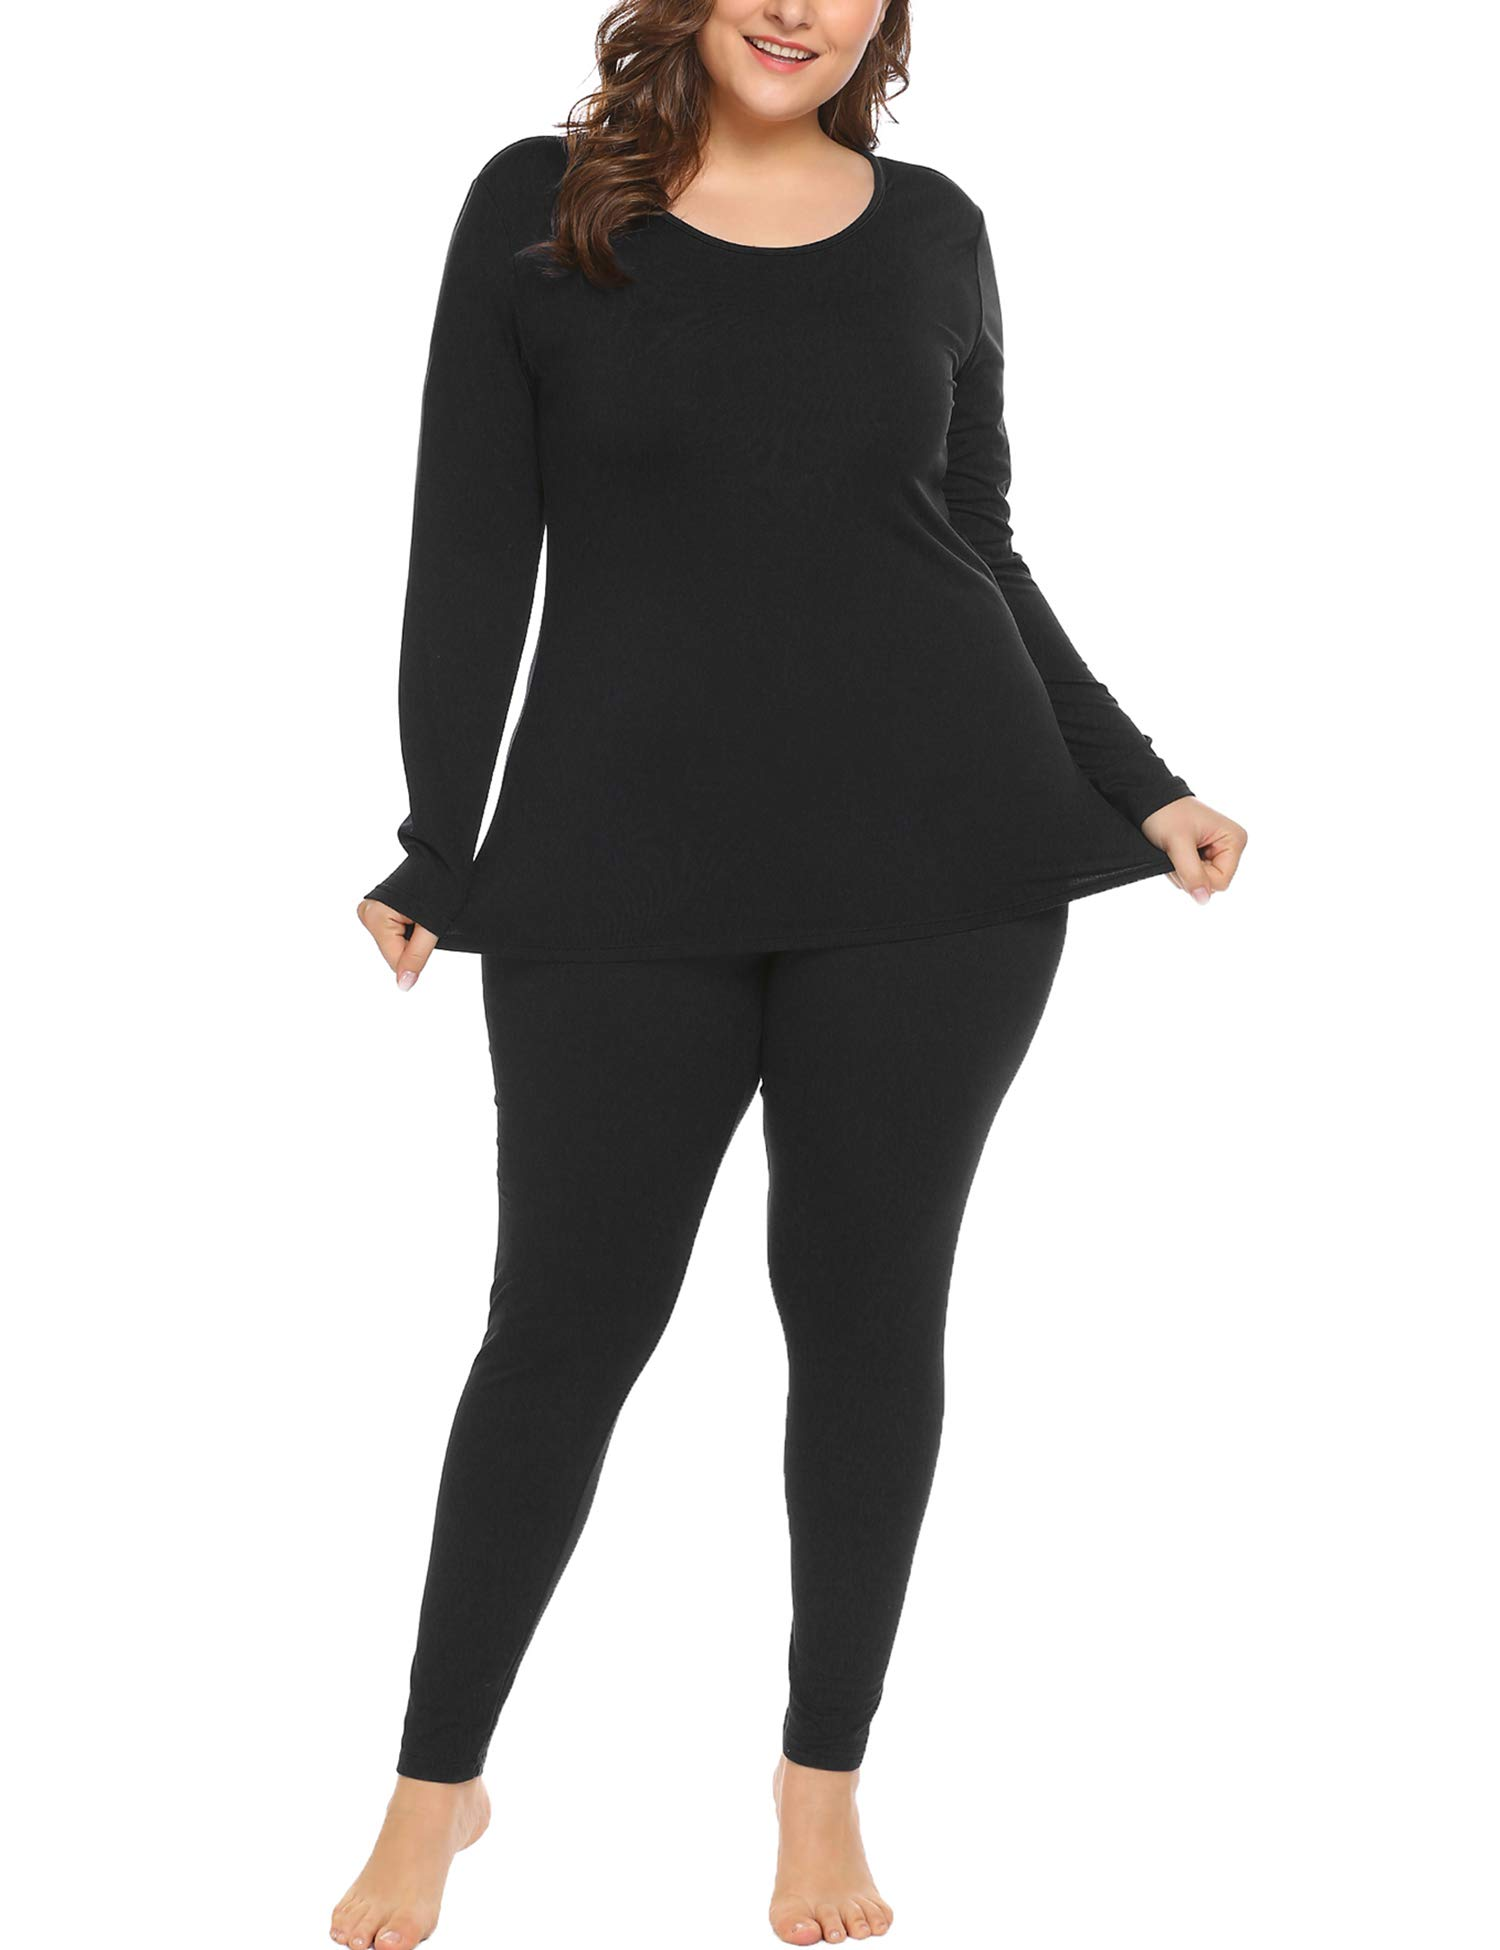 In'voland Women's Plus Size Thermal Long Johns Sets Fleece Lined 2 Pcs Underwear Top & Bottom Pajama  Black 22W by IN'VOLAND